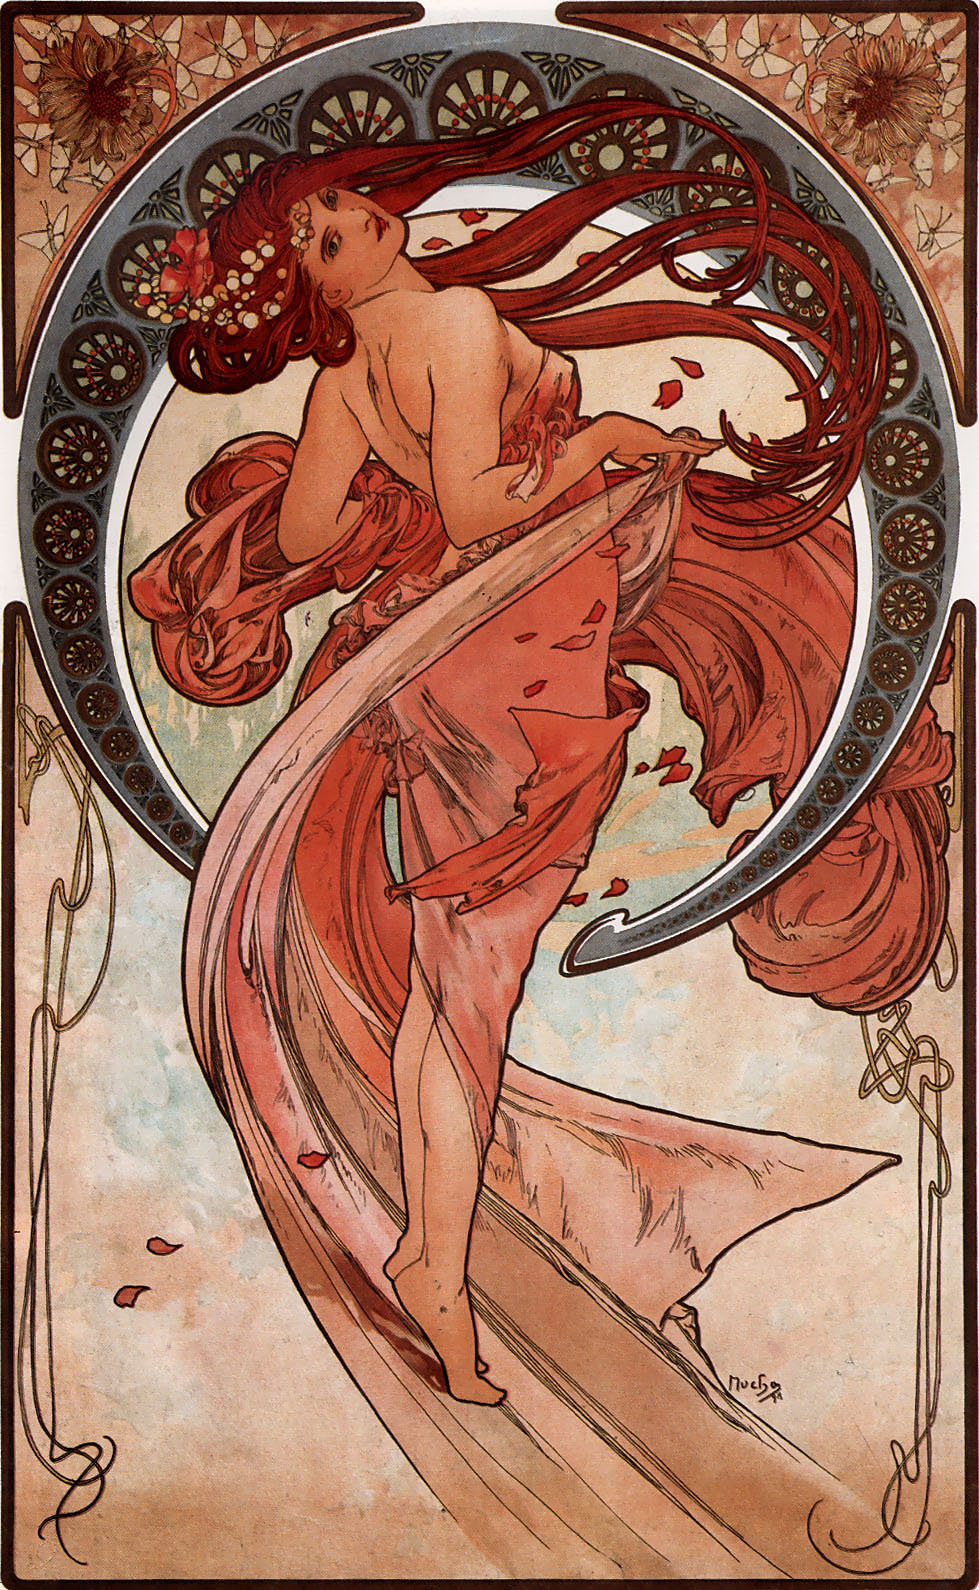 art nouveau alphonse mucha Find great deals on ebay for alphonse mucha art nouveau shop with confidence.